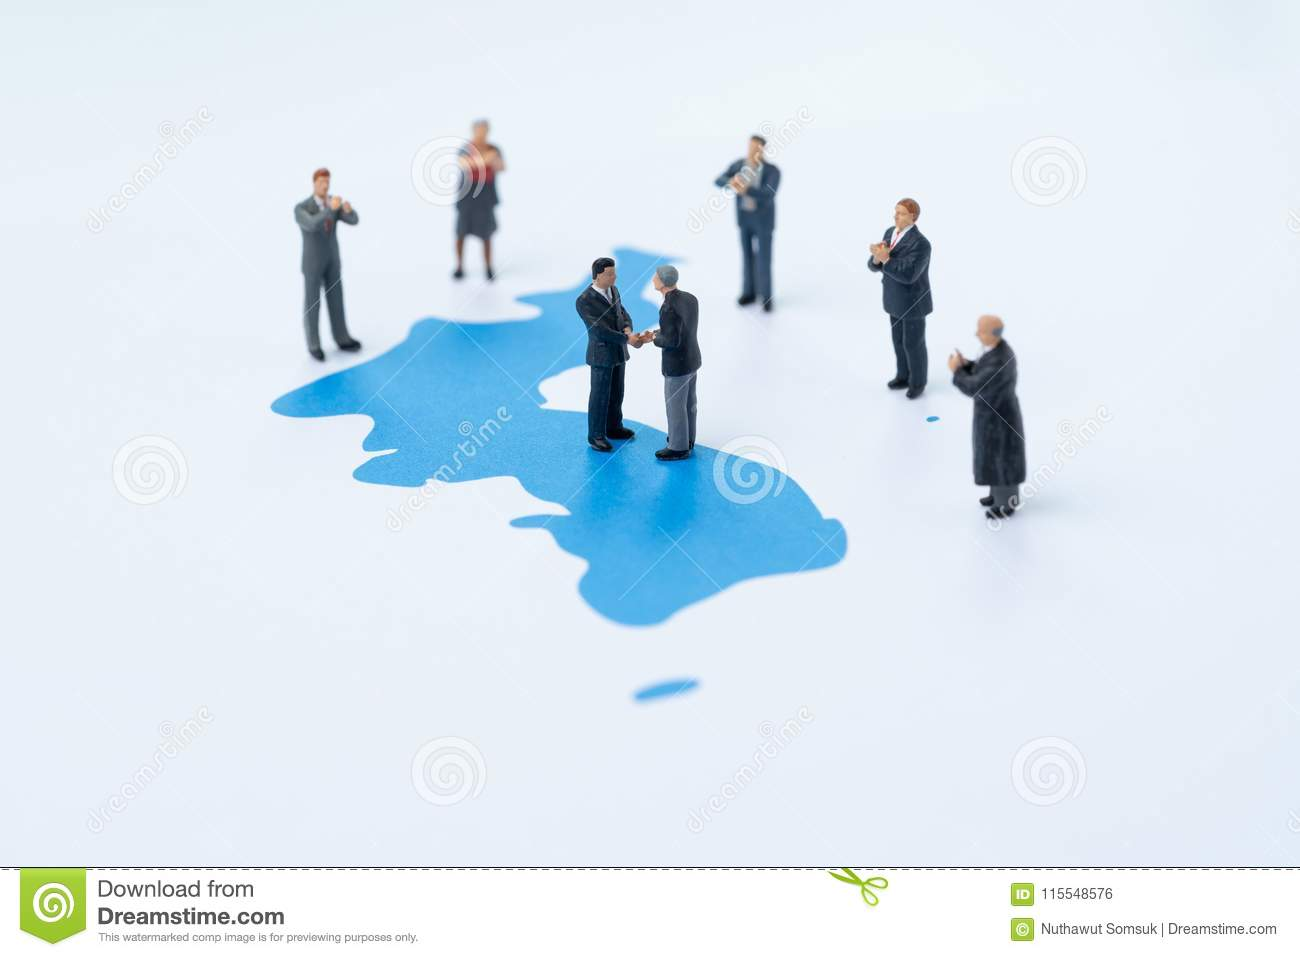 North and south korea peace, end war and denuclearization concept, miniature people country leader shake hands on Korea